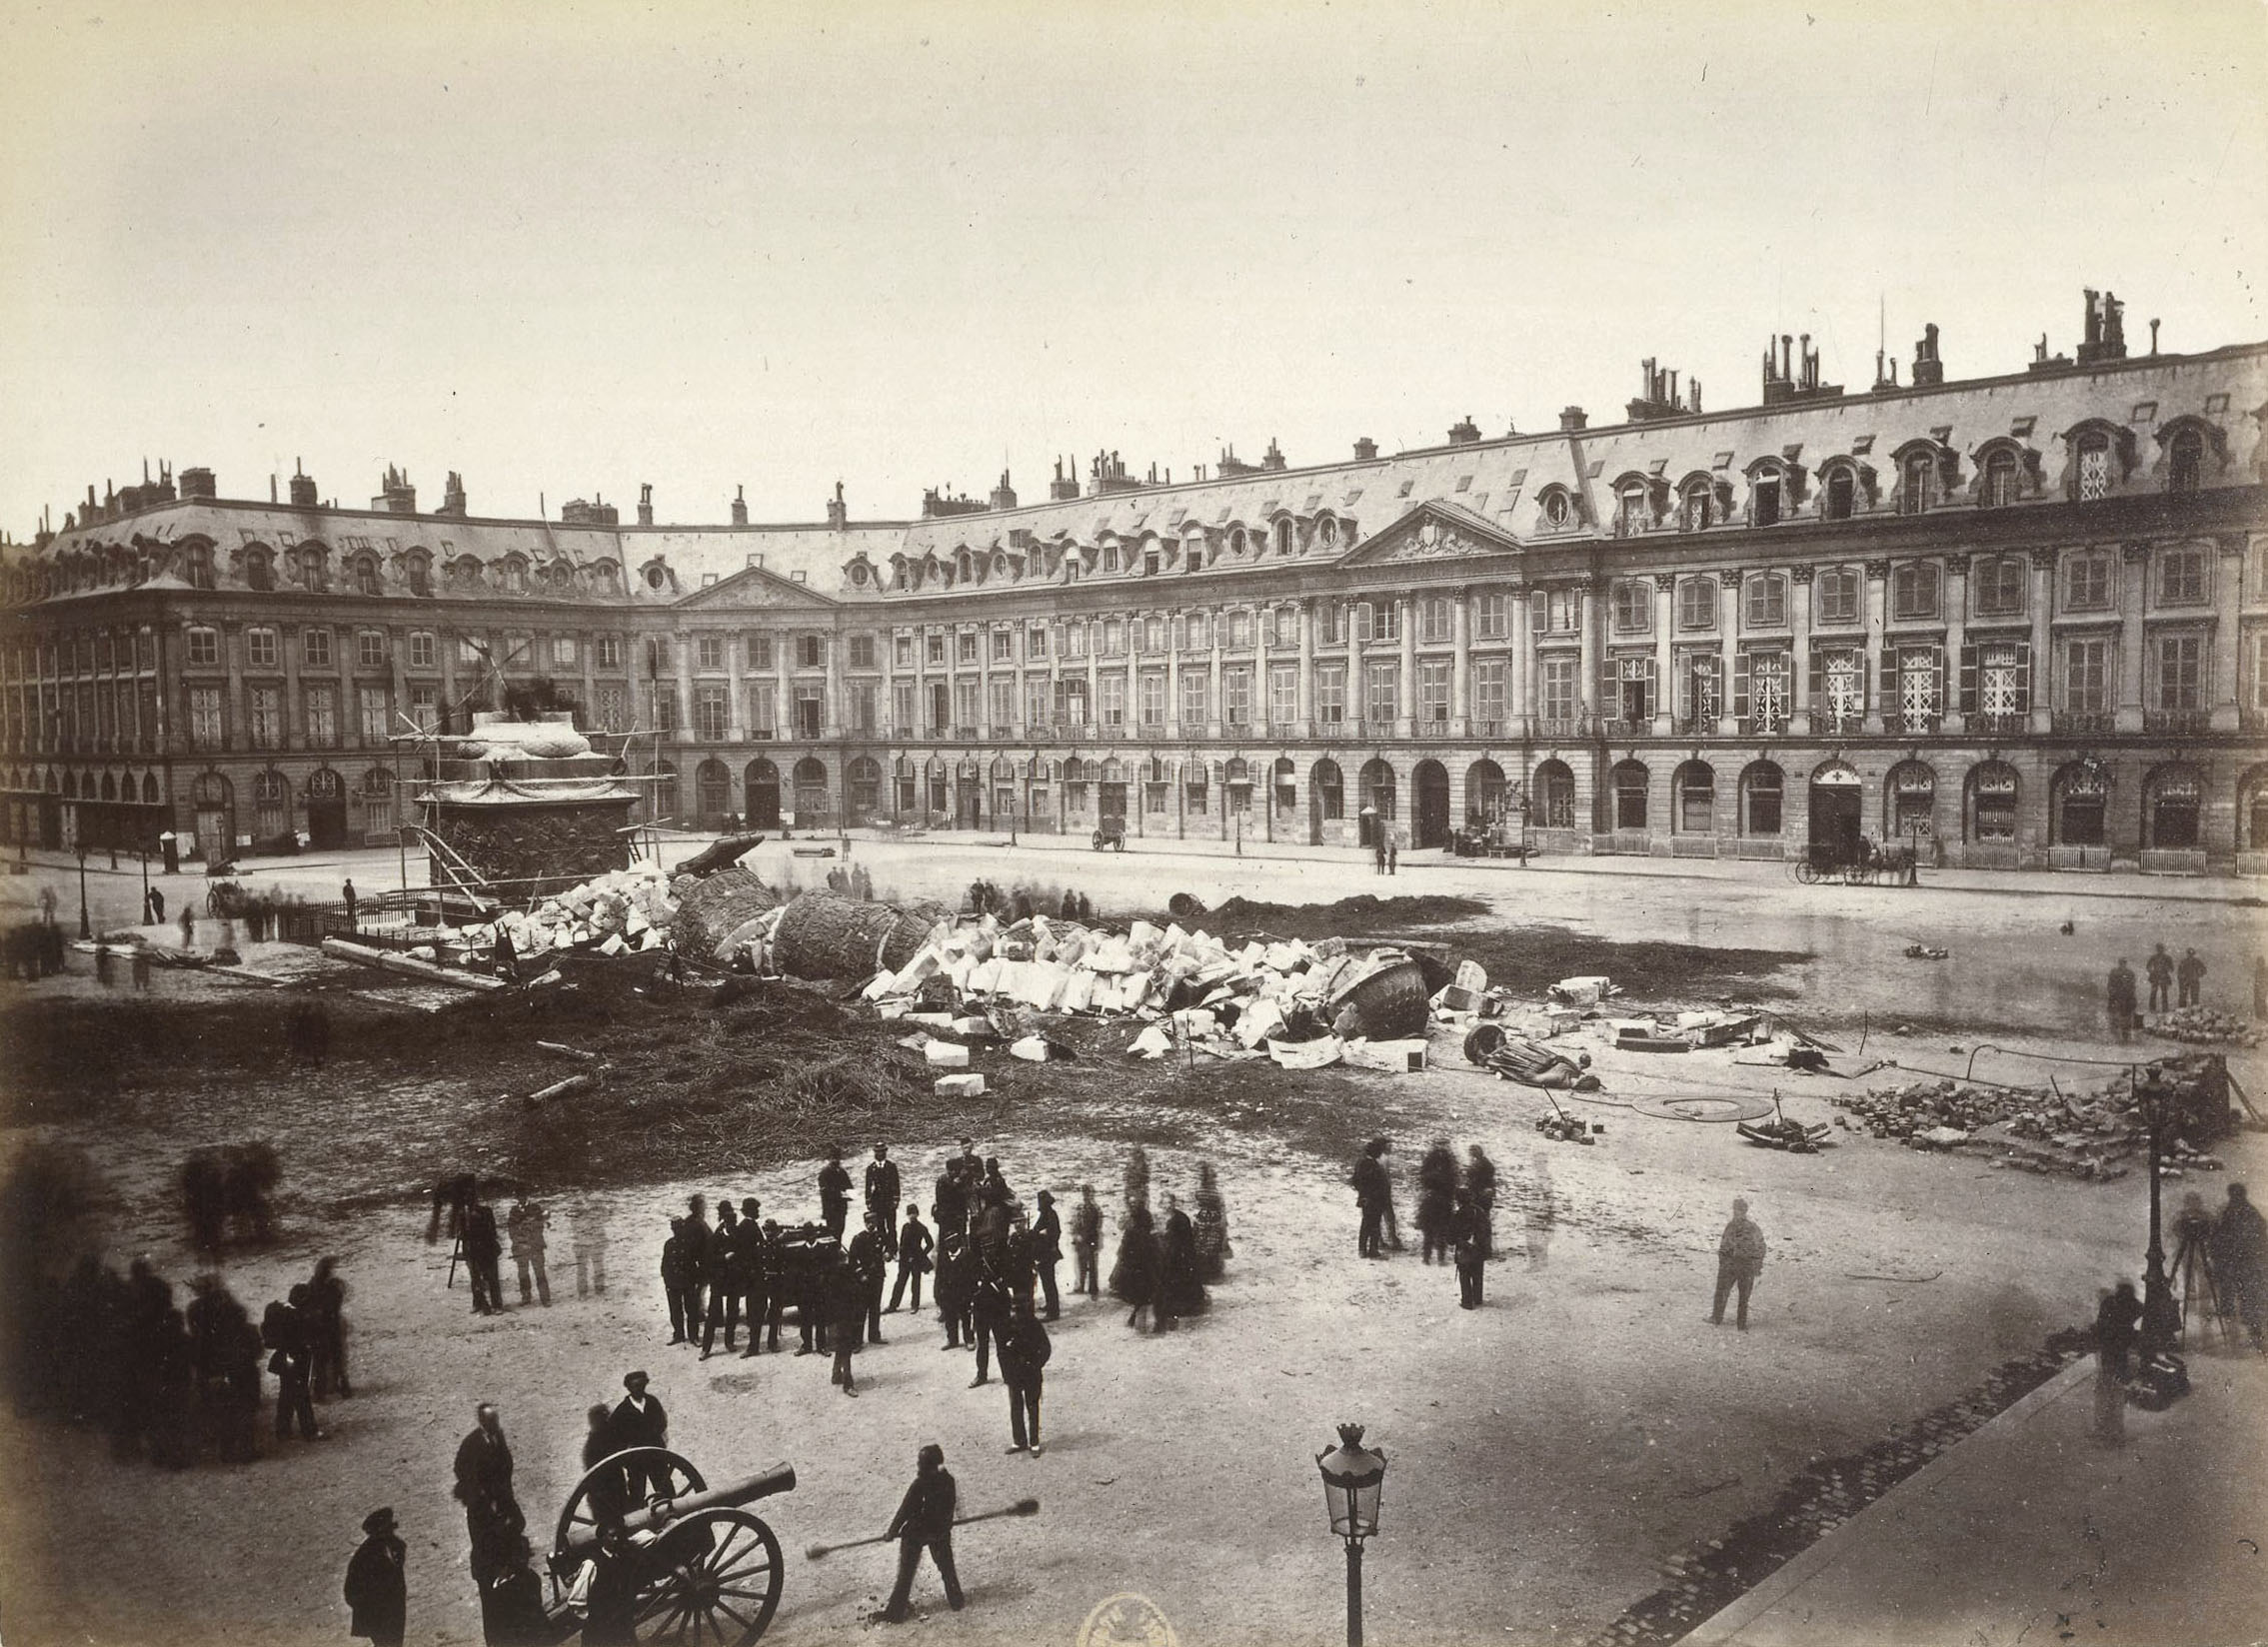 Ruinen Paris 1871 : die Zerstörung der Colonne Vendôme während der Pariser Kommune, Paris, Bibliothèque nationale de France (BnF). Photo : Braquehais Bruno (1823-1875). © BnF, Dist. RMN-Grand Palais / image BnF